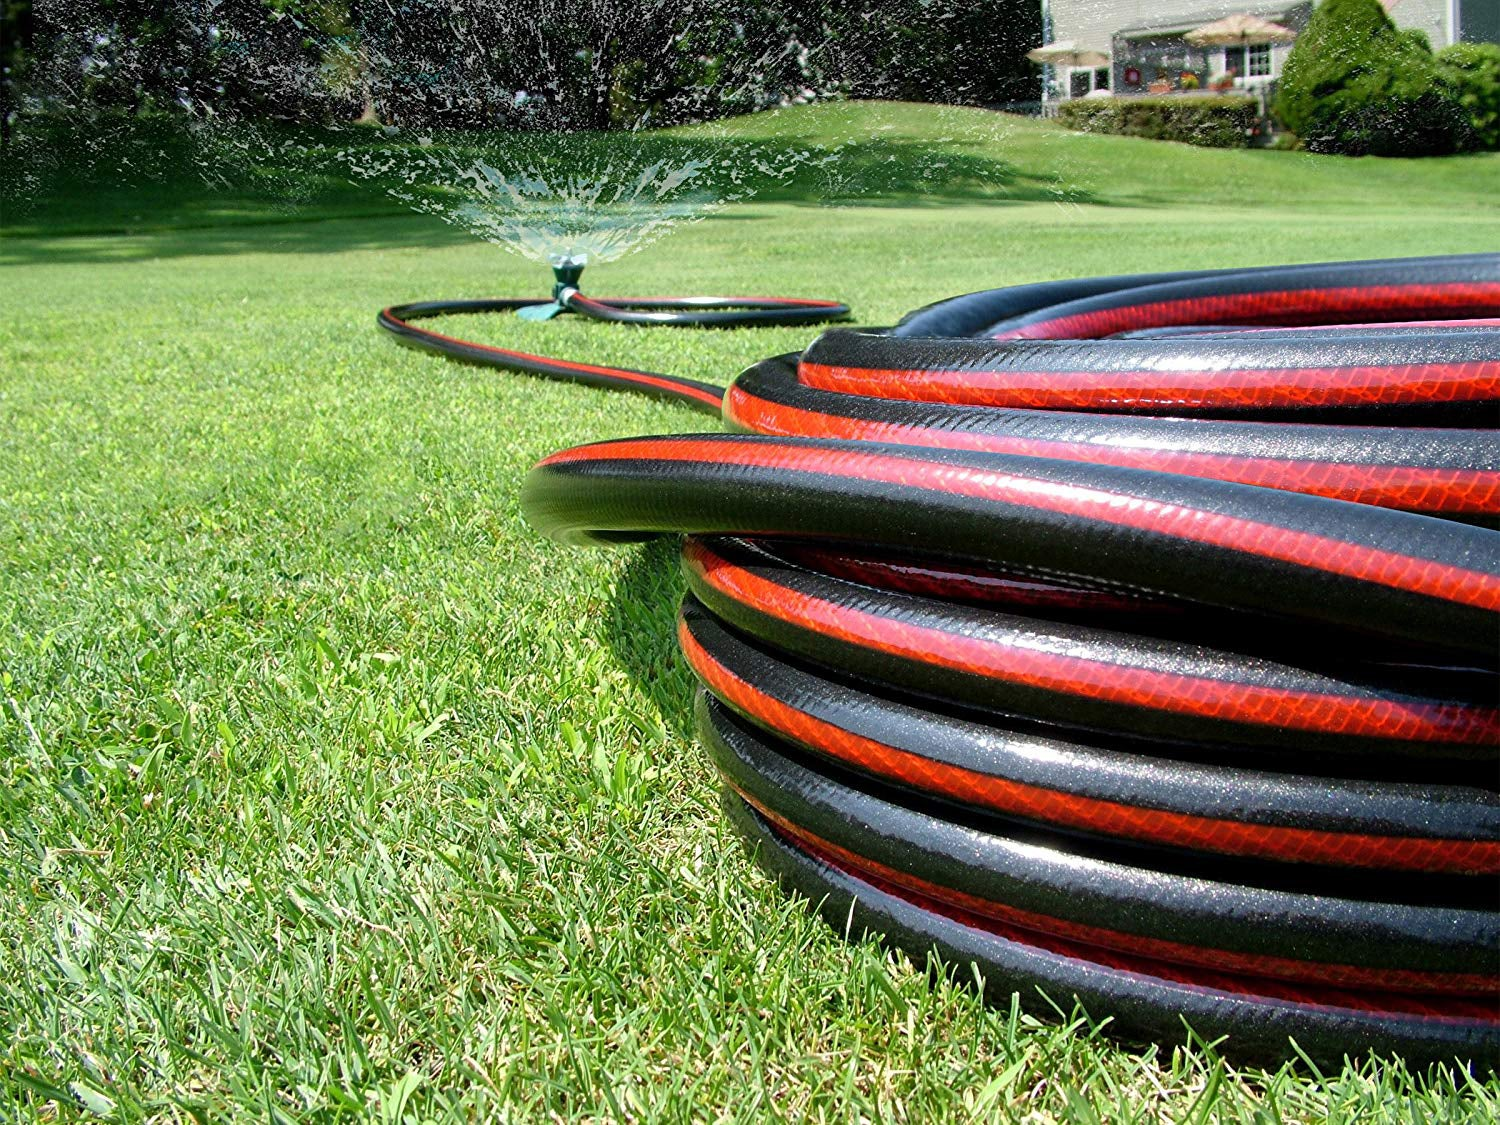 black and red garden hose attached to sprinkler in the yard